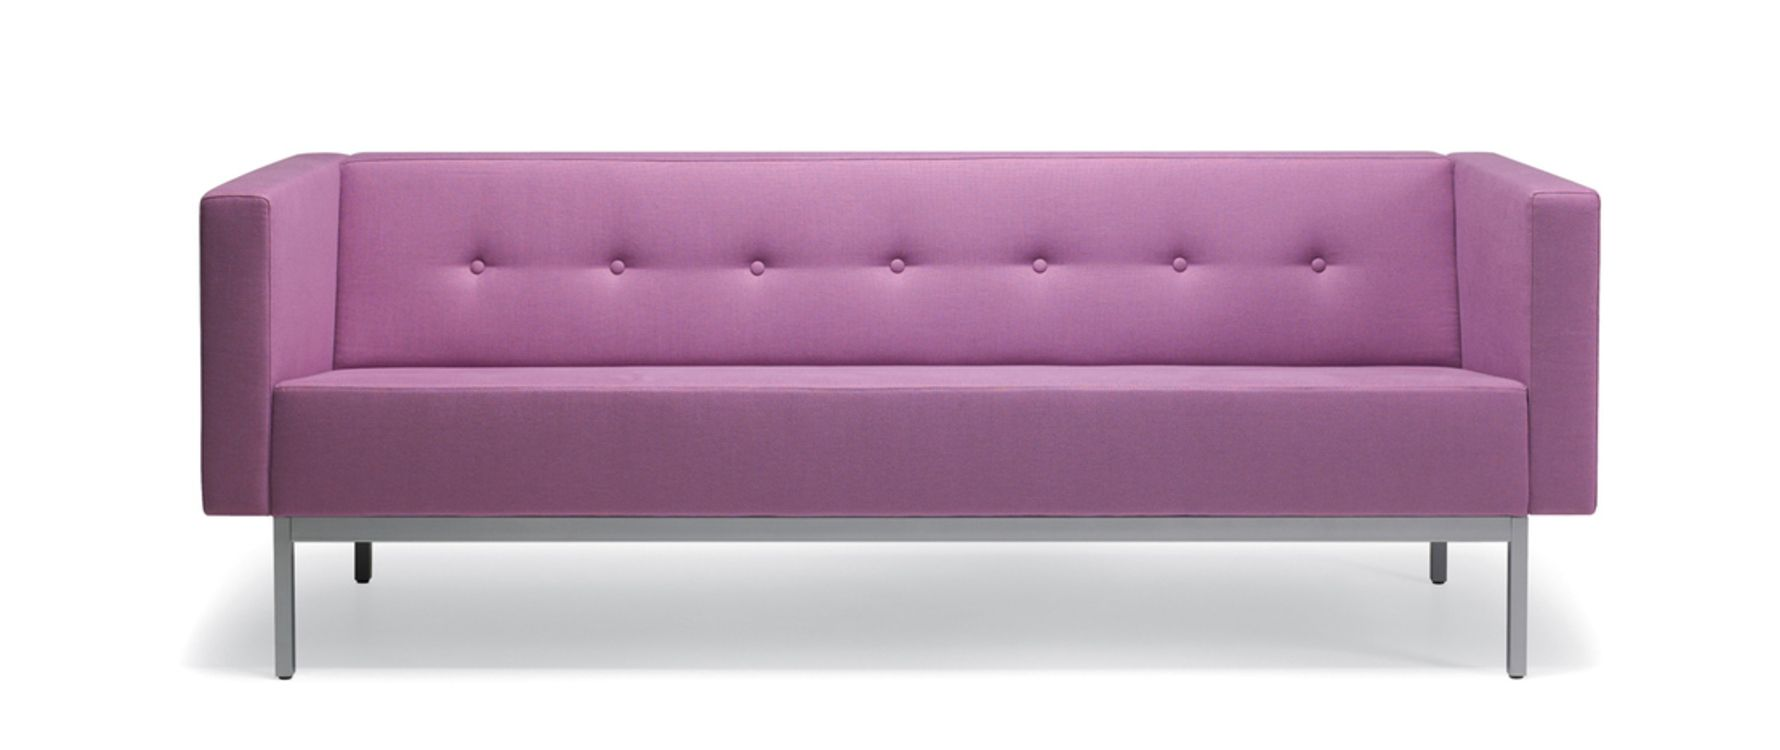 Purple CouchPurple Sofas You Ll Love Wayfair